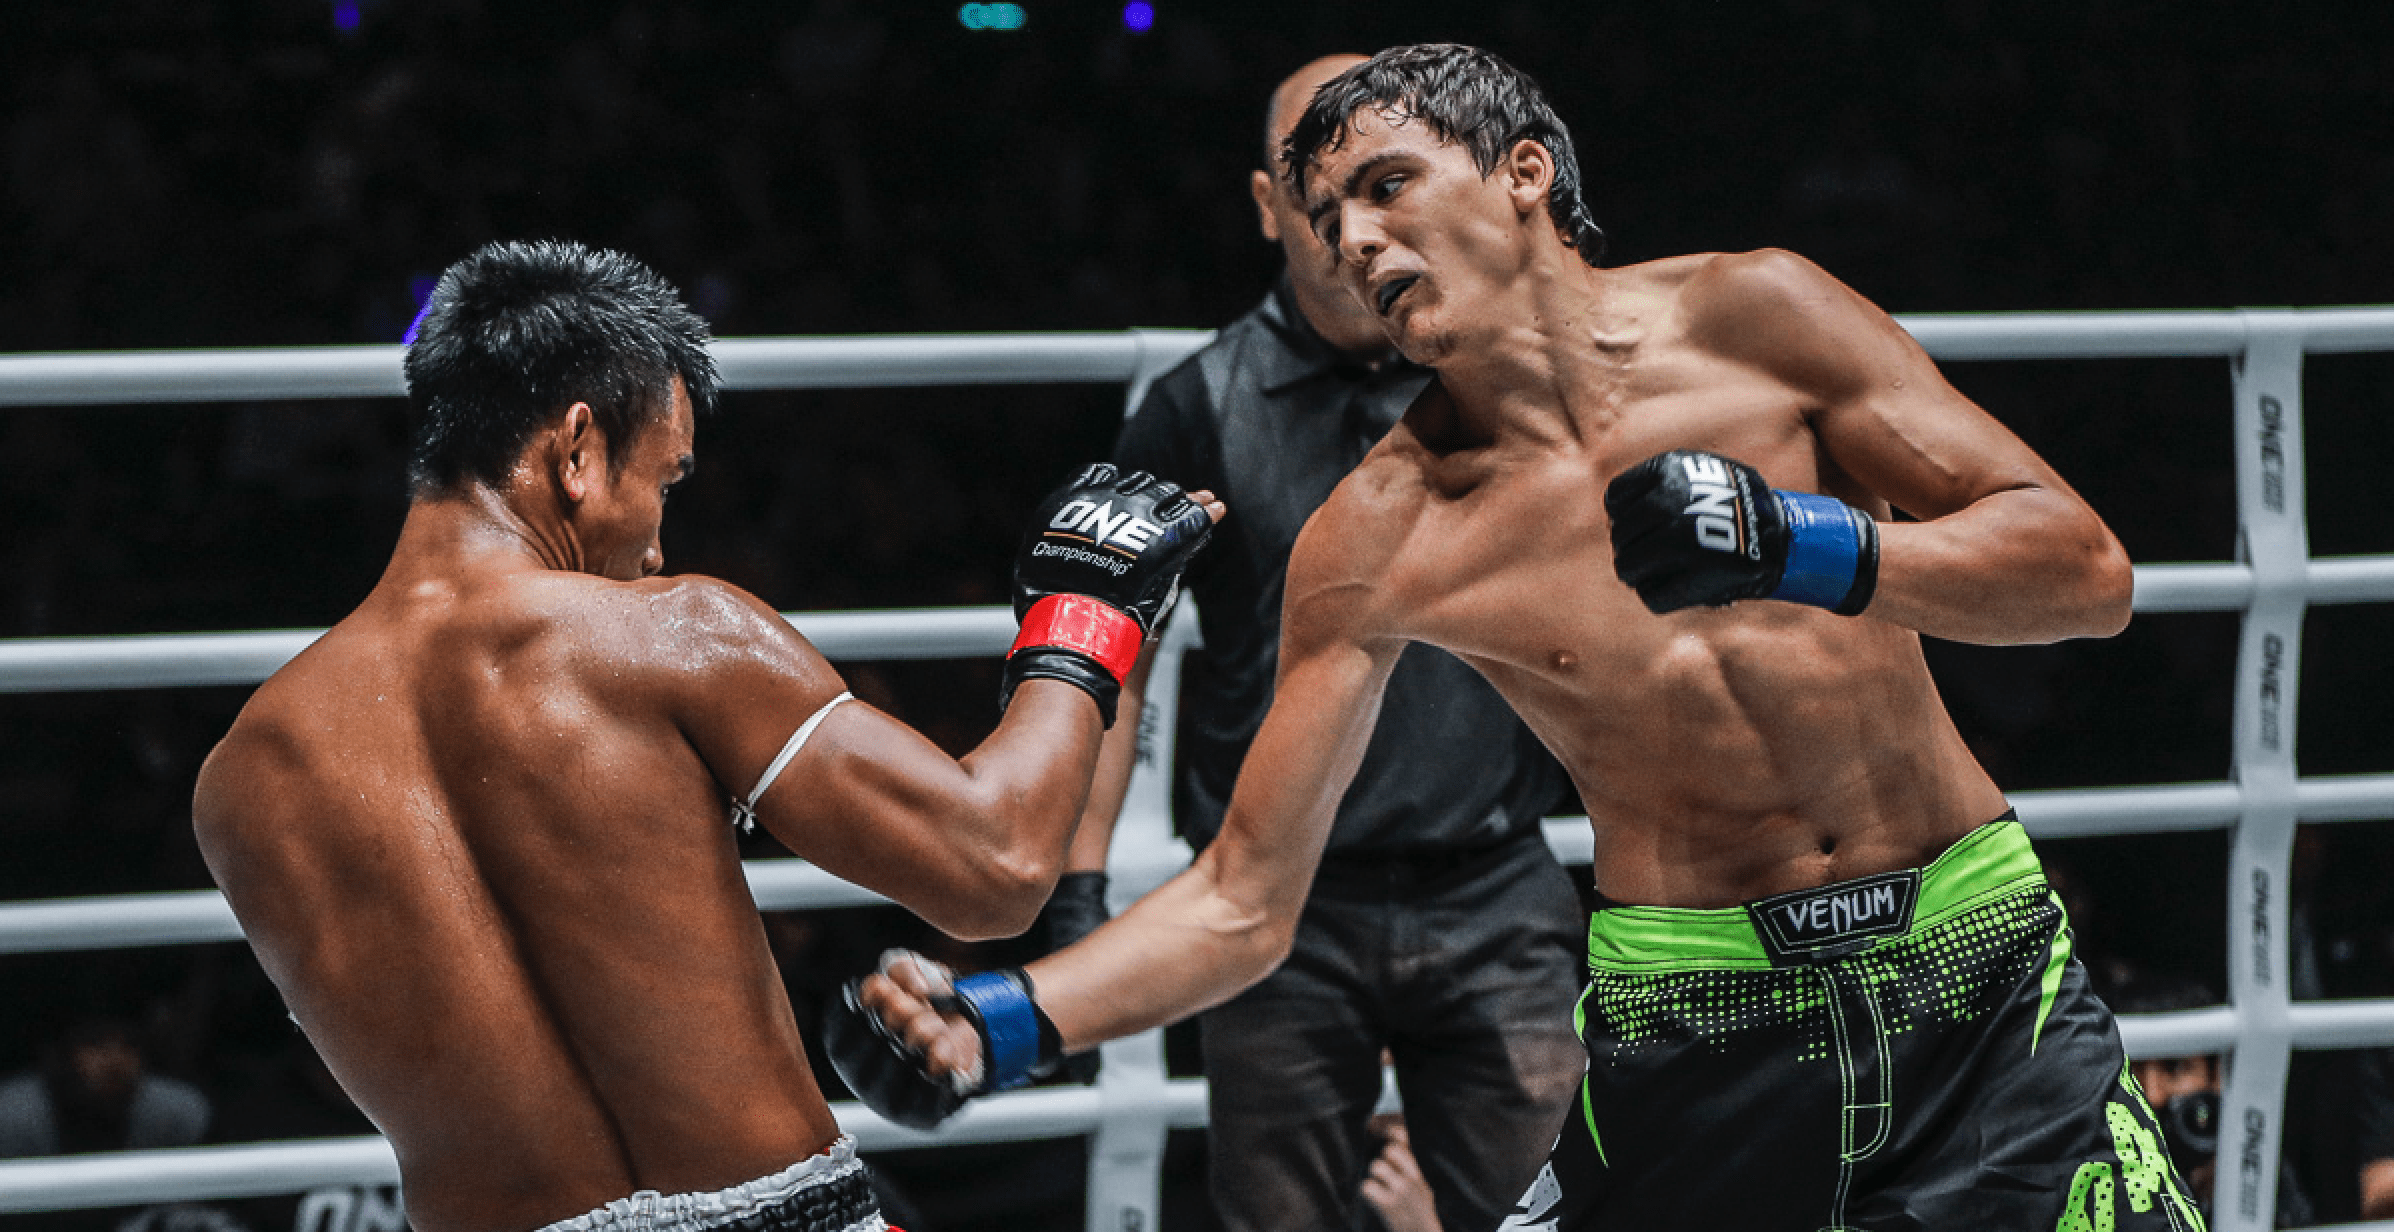 ONE Championship To End 2019 With Two Title Bouts In Kuala Lumpur